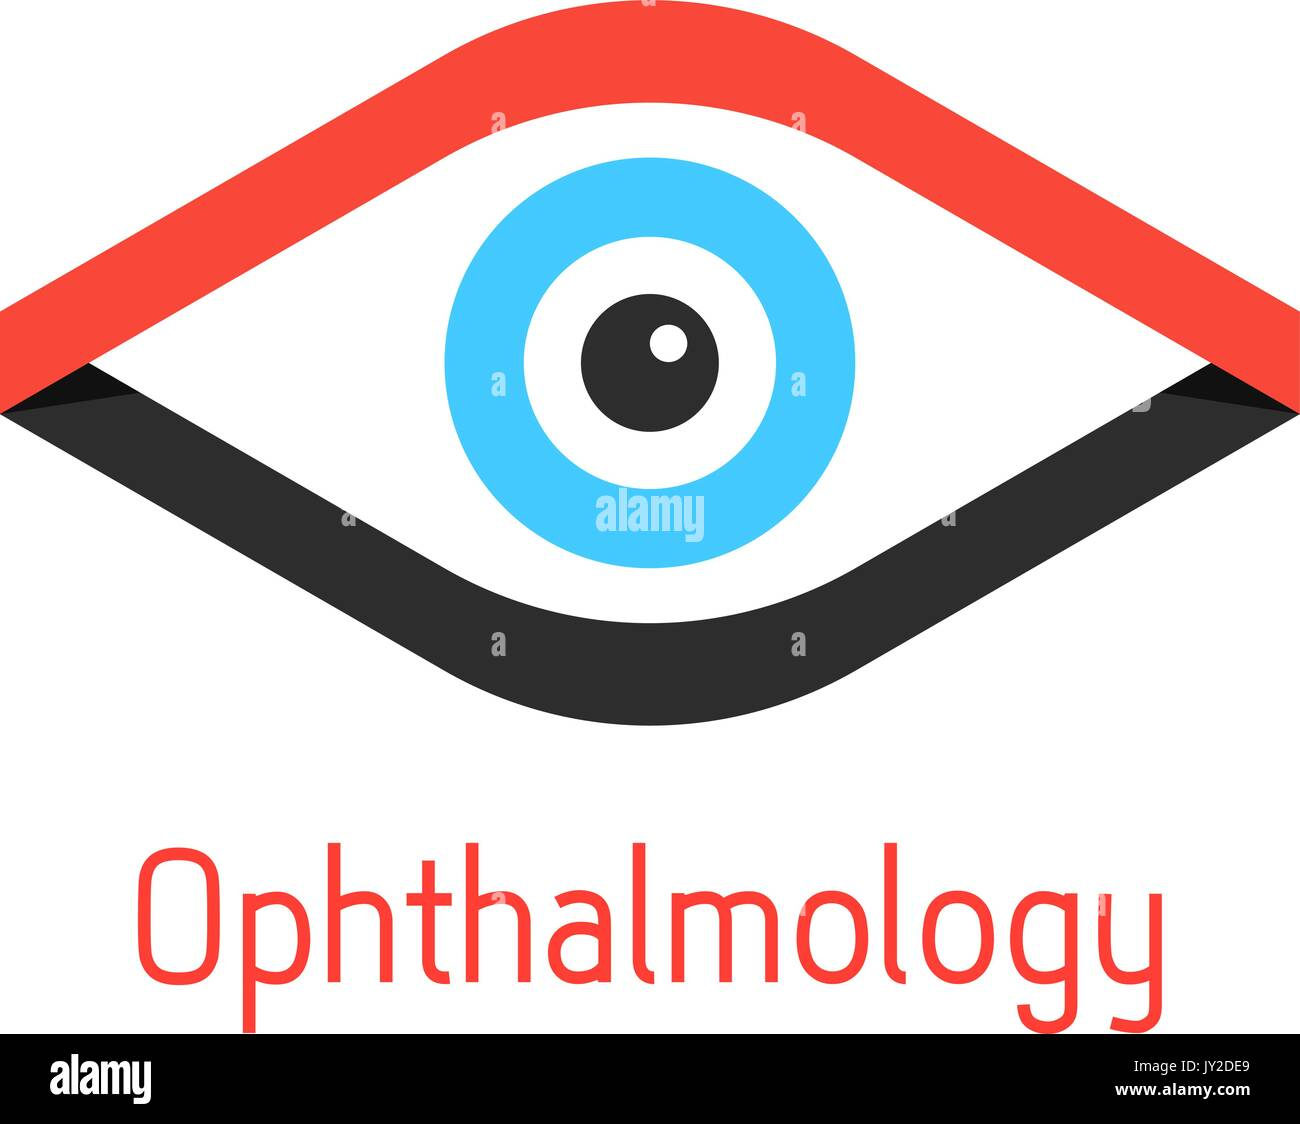 ophthalmology logotype with eye from ribbons - Stock Image